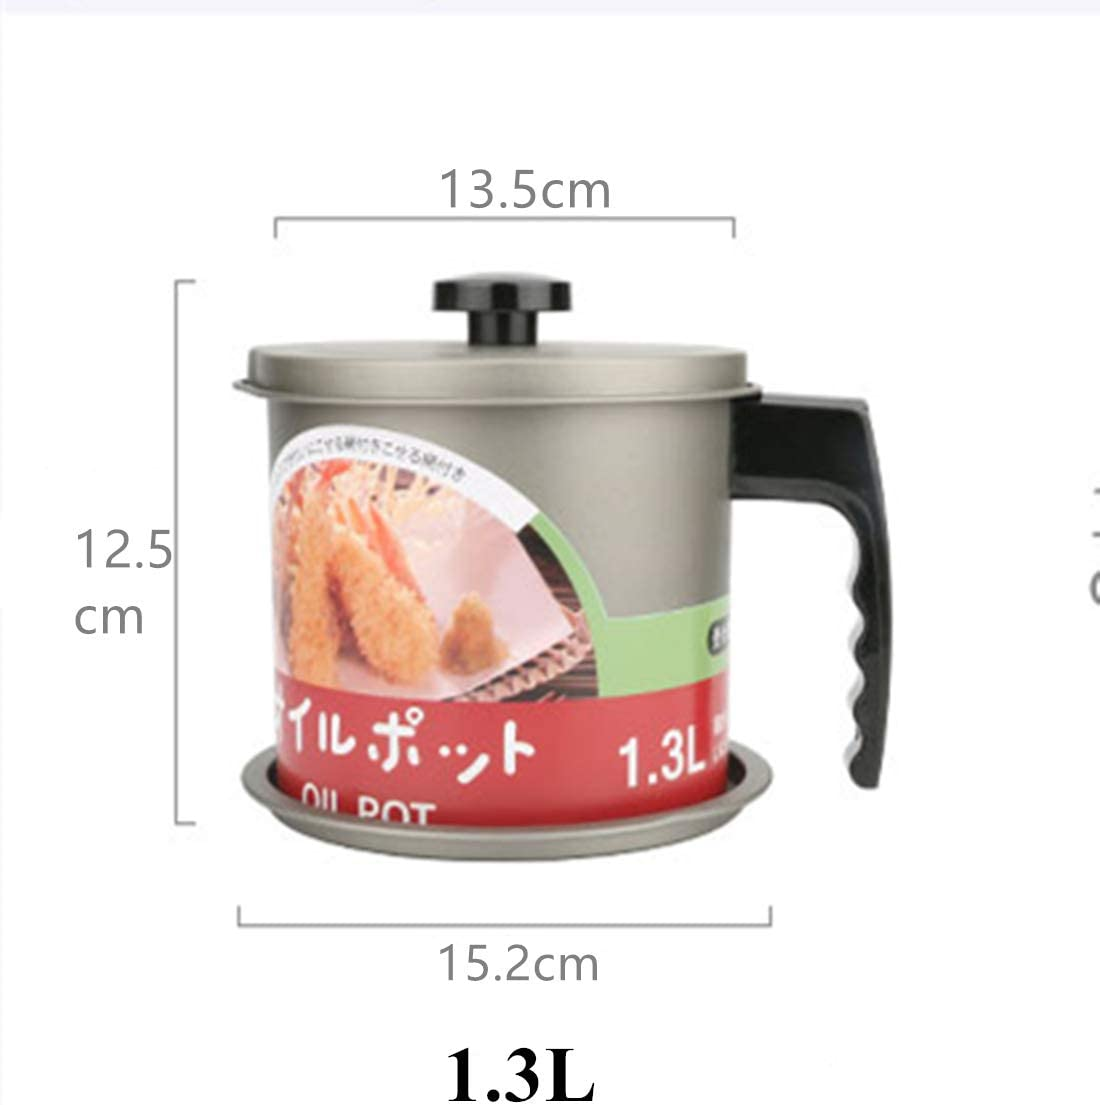 1.6L Cooking Oil Storage Grease Keeper, Grease Oil Strainer Container Pot with Filter for Deep Fryer Grey-1.3l